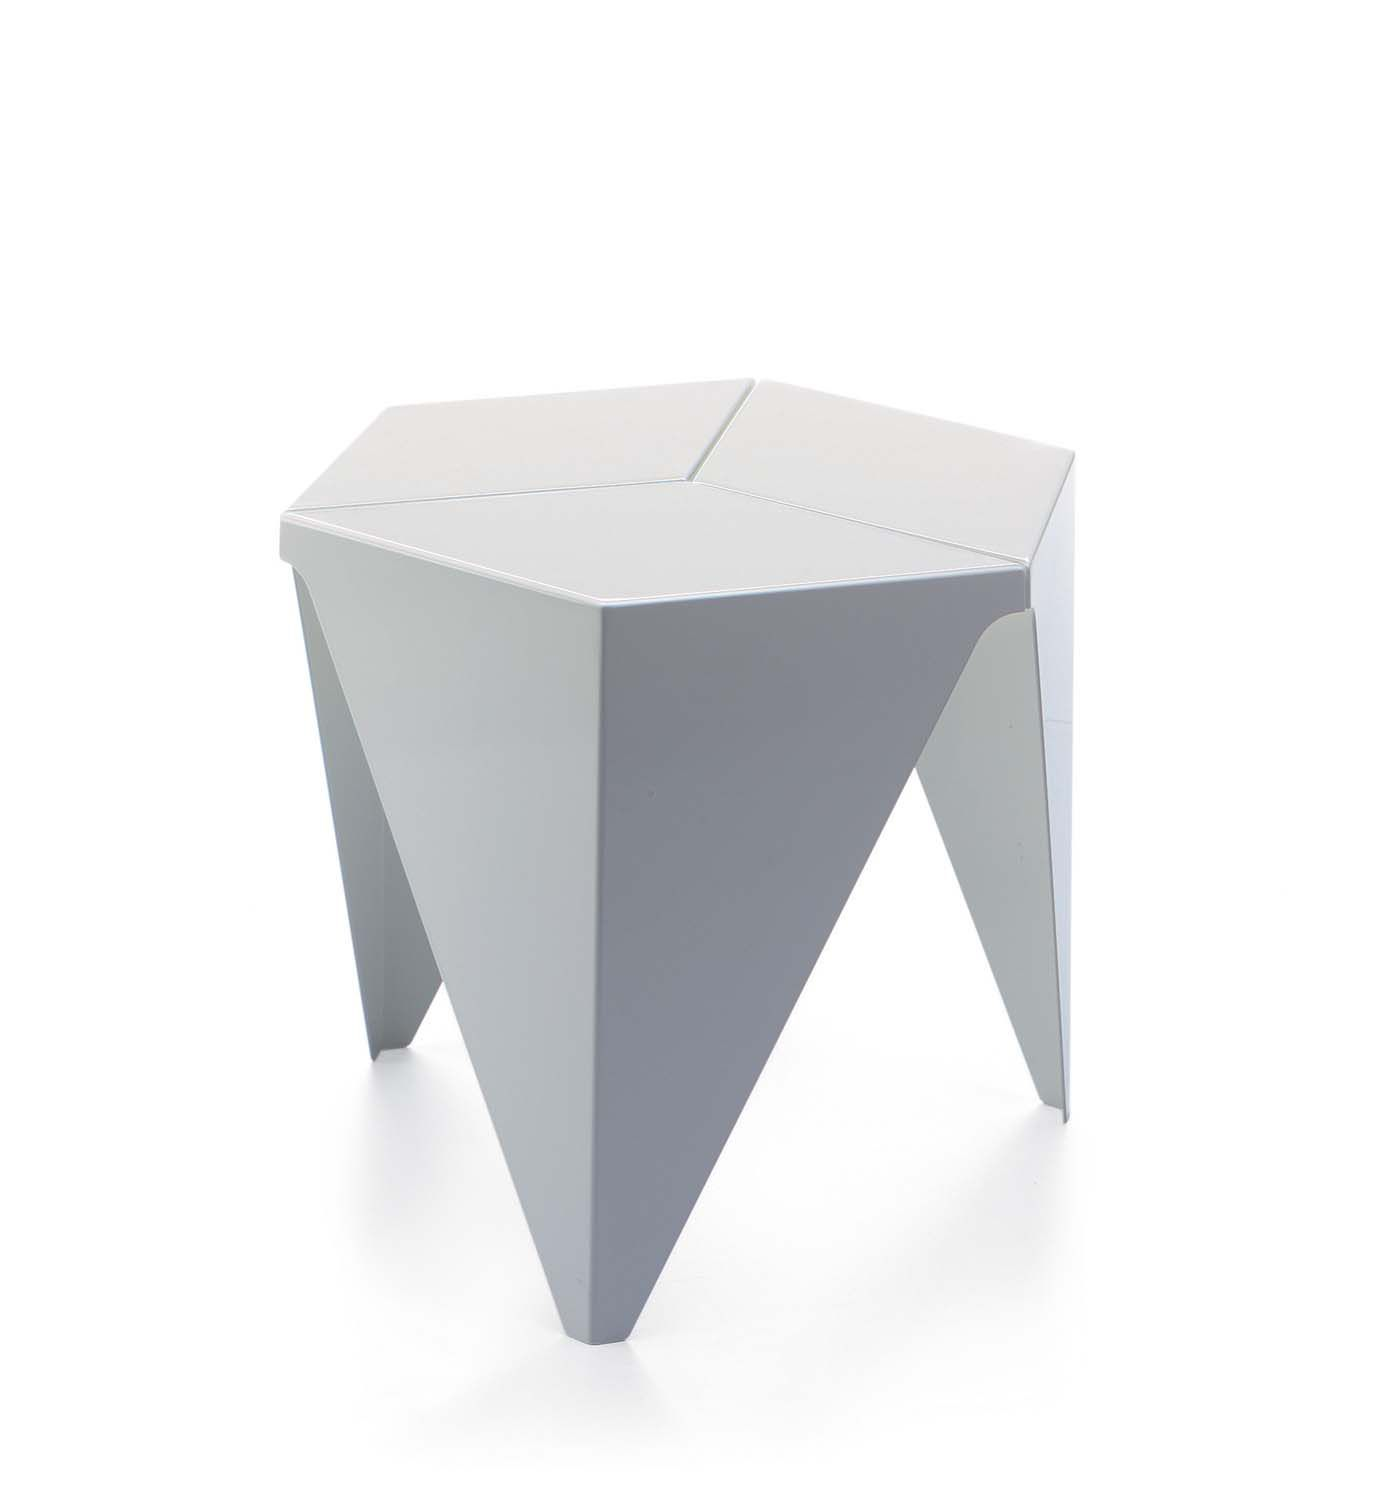 Populaire Contemporary side table / aluminum / hexagonal / by Isamu Noguchi  NG46